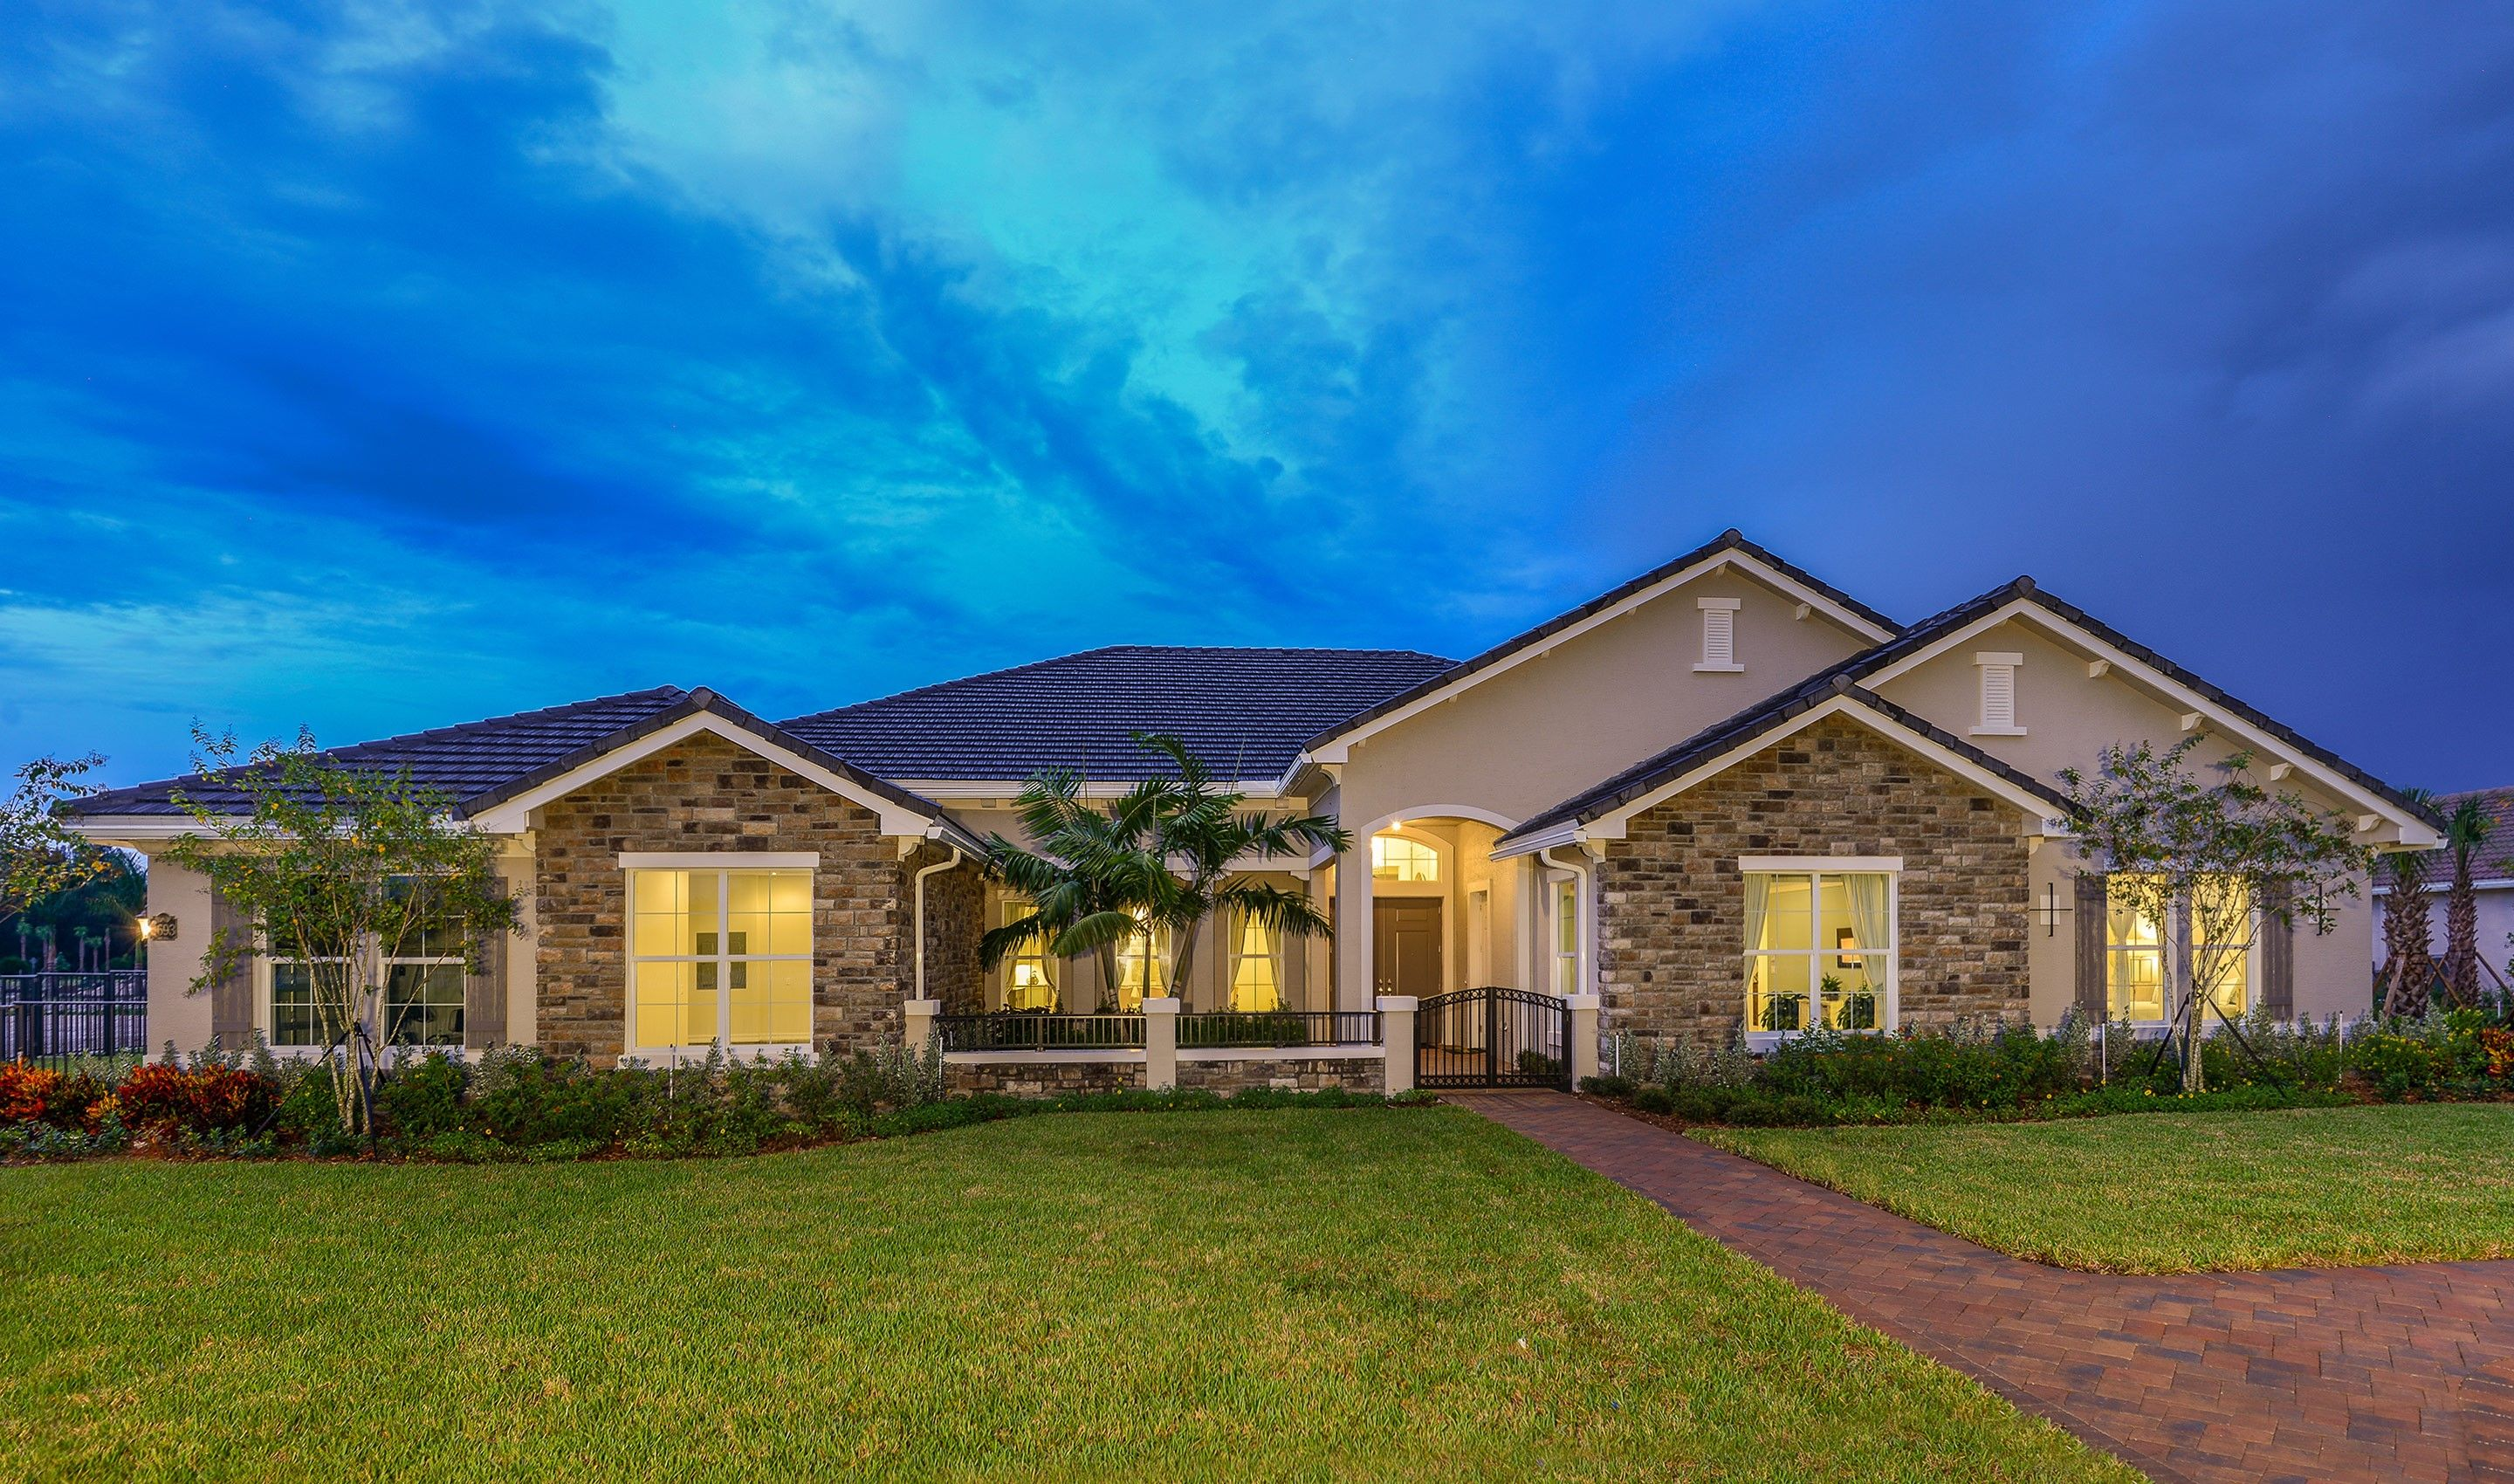 Single Family for Sale at Hawthorne 5041 East Sterling Ranch Circle DAVIE, FLORIDA 33314 UNITED STATES